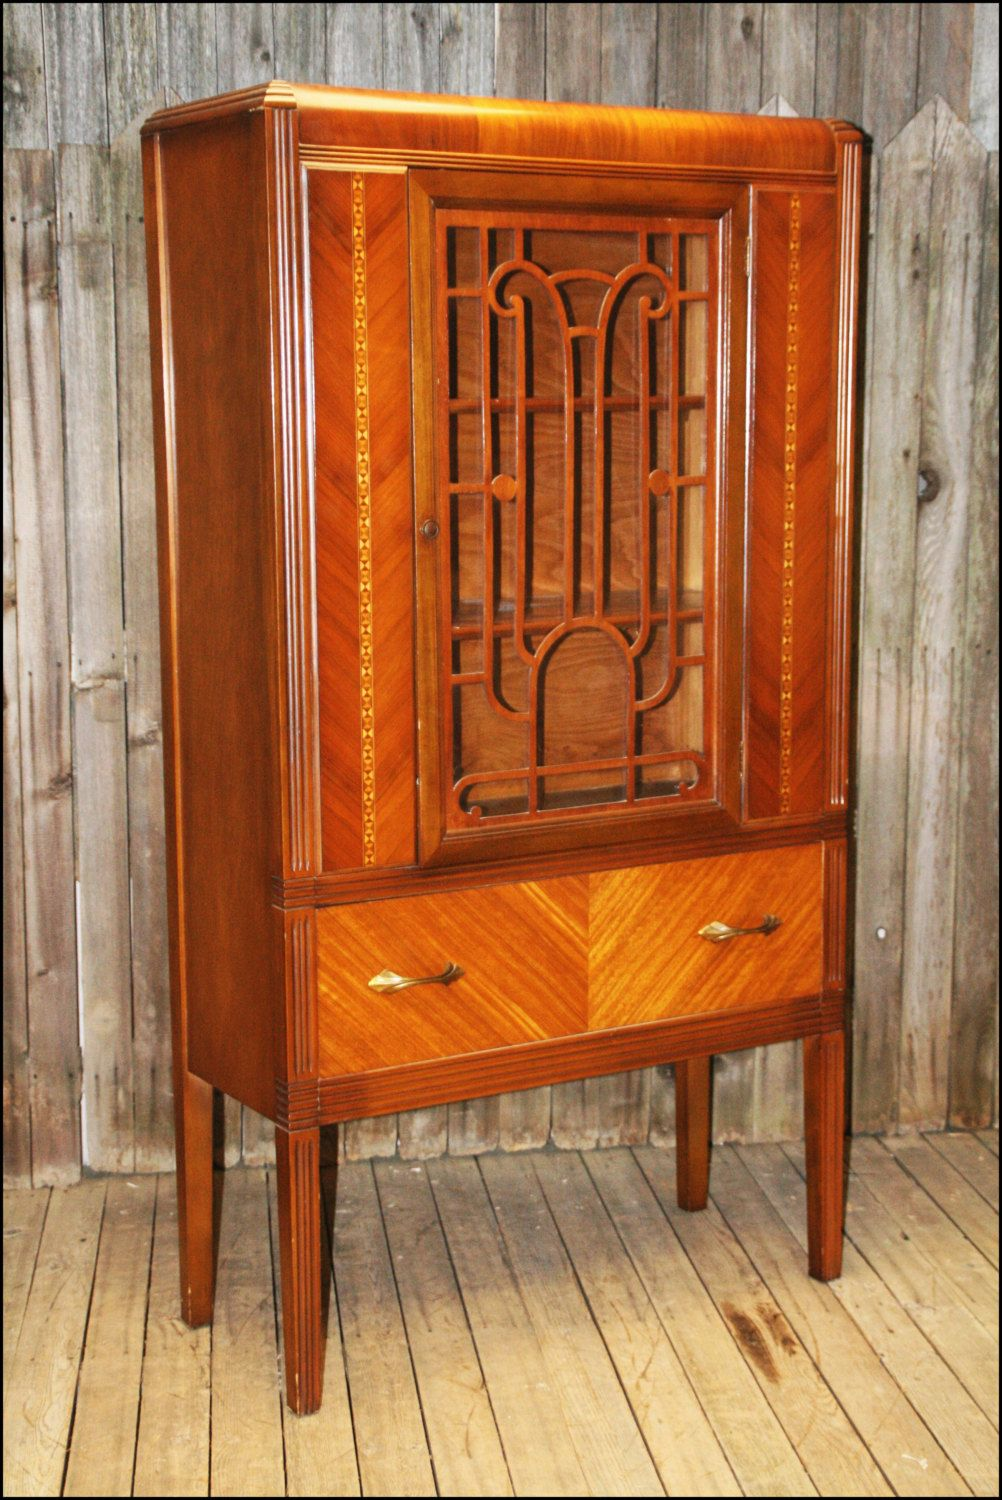 Art Deco WATERFALL CHINA CABINET Vtg Antique Curio Display Cupboard Hutch 40s 50s Wooden Dining